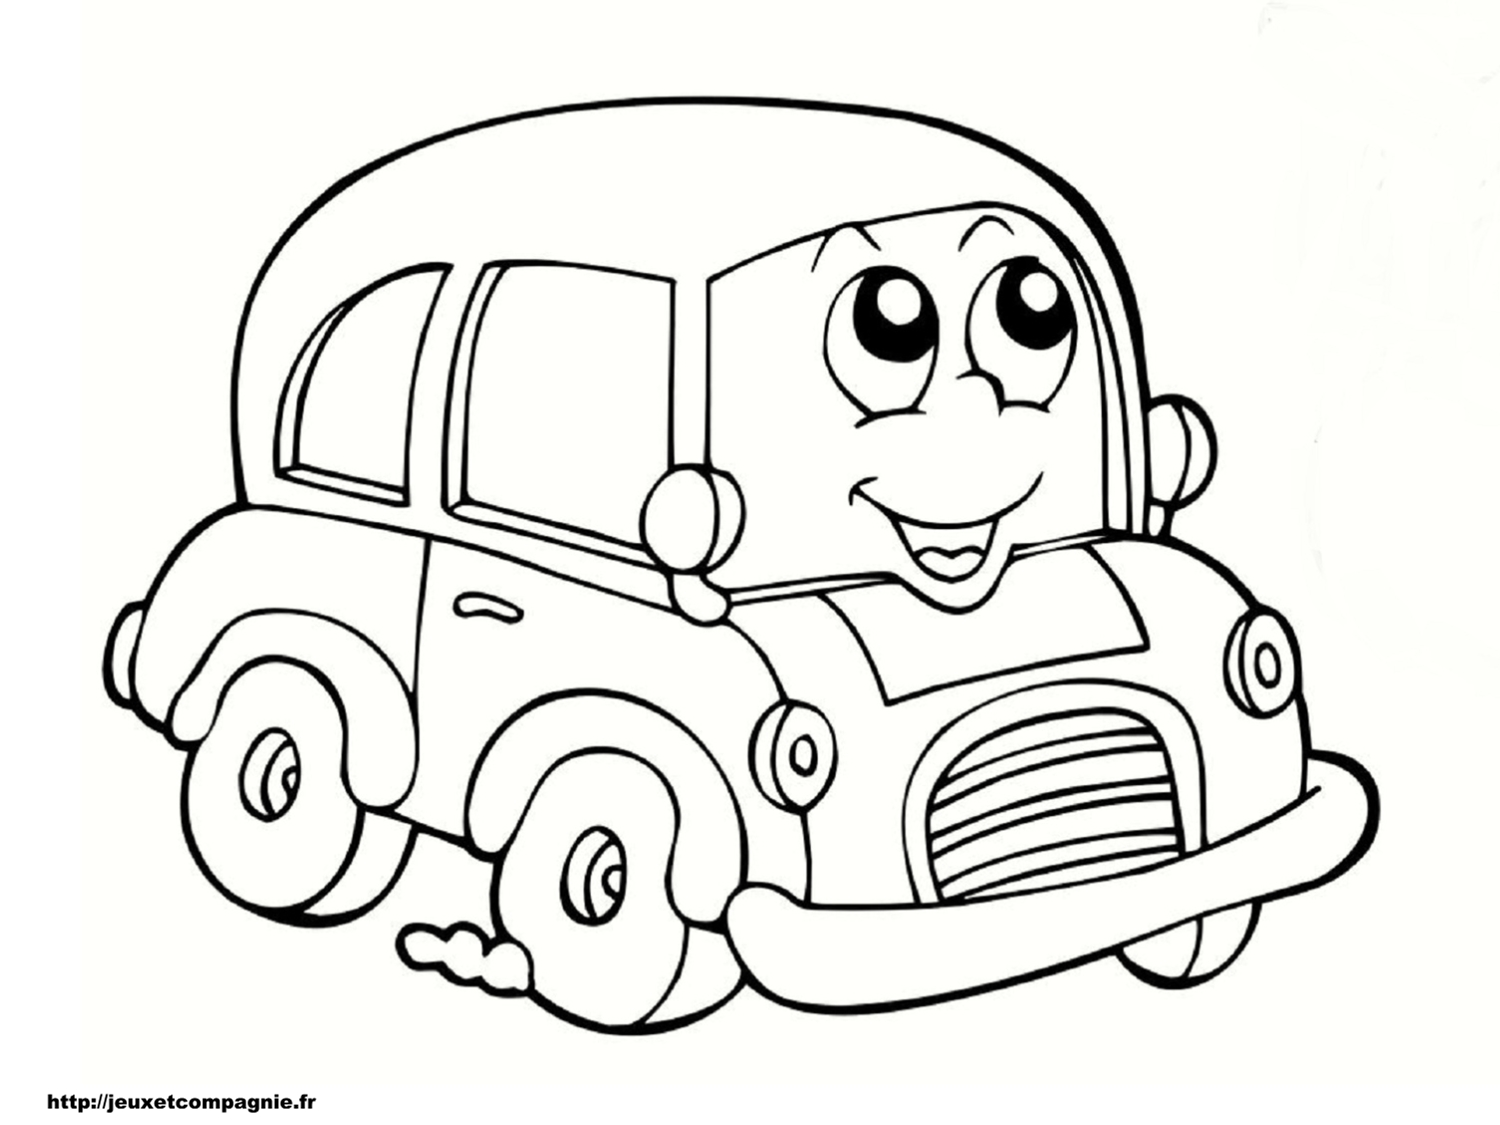 Car to color for children - Car Kids Coloring Pages